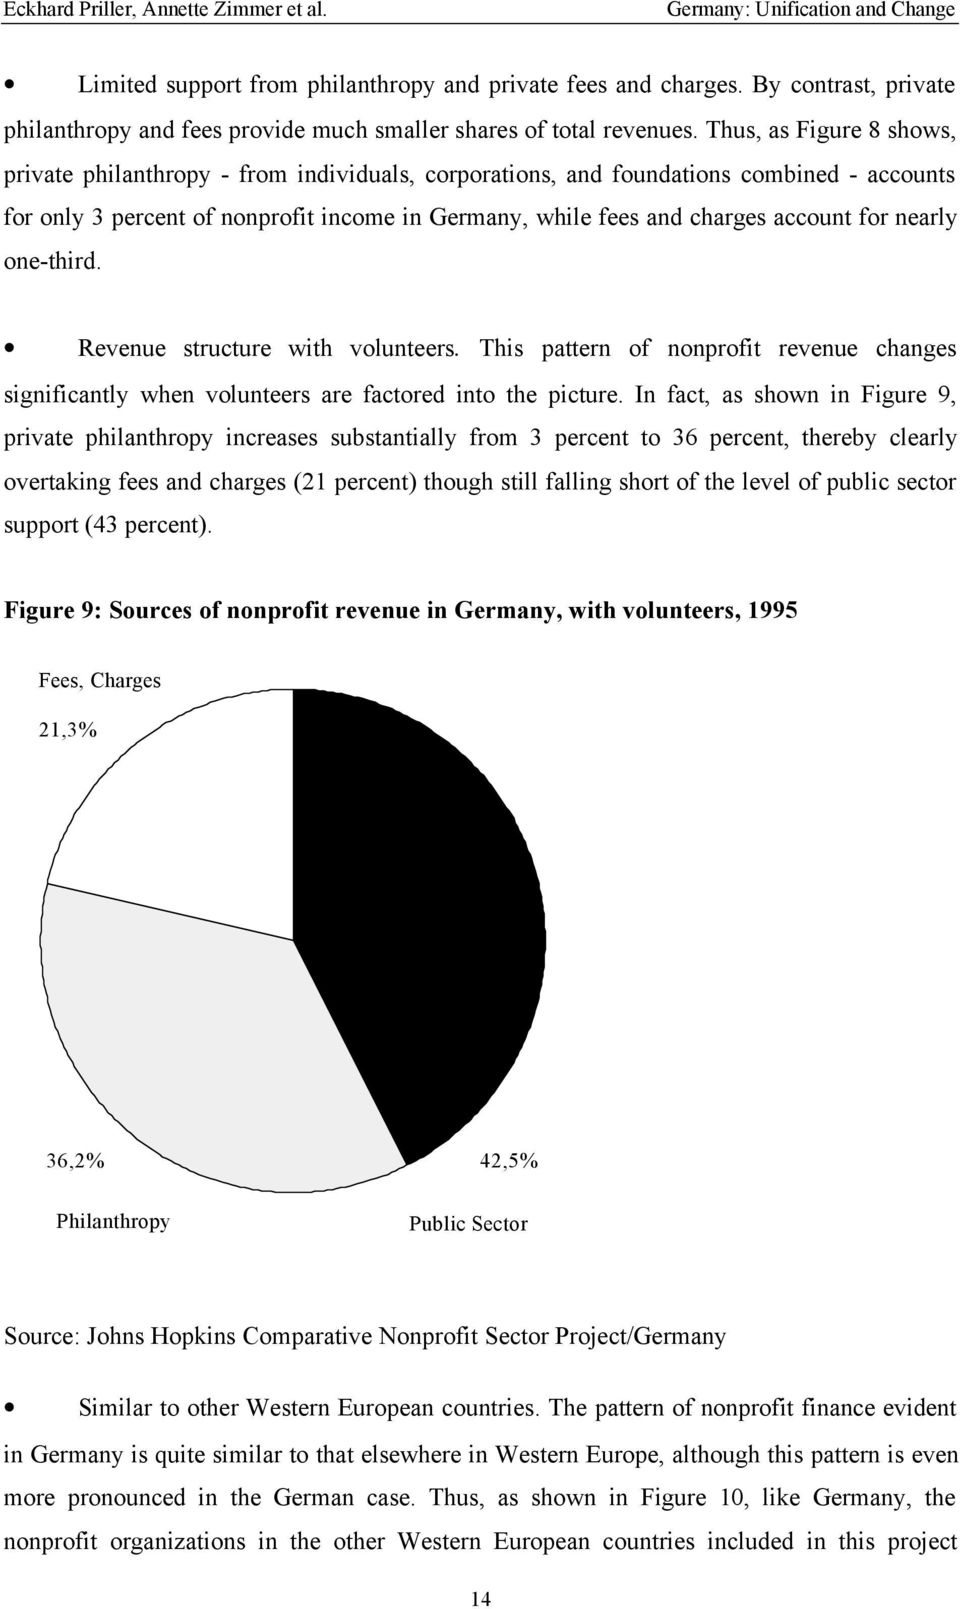 Thus, as Figure 8 shows, private philanthropy - from individuals, corporations, and foundations combined - accounts for only 3 percent of nonprofit income in Germany, while fees and charges account